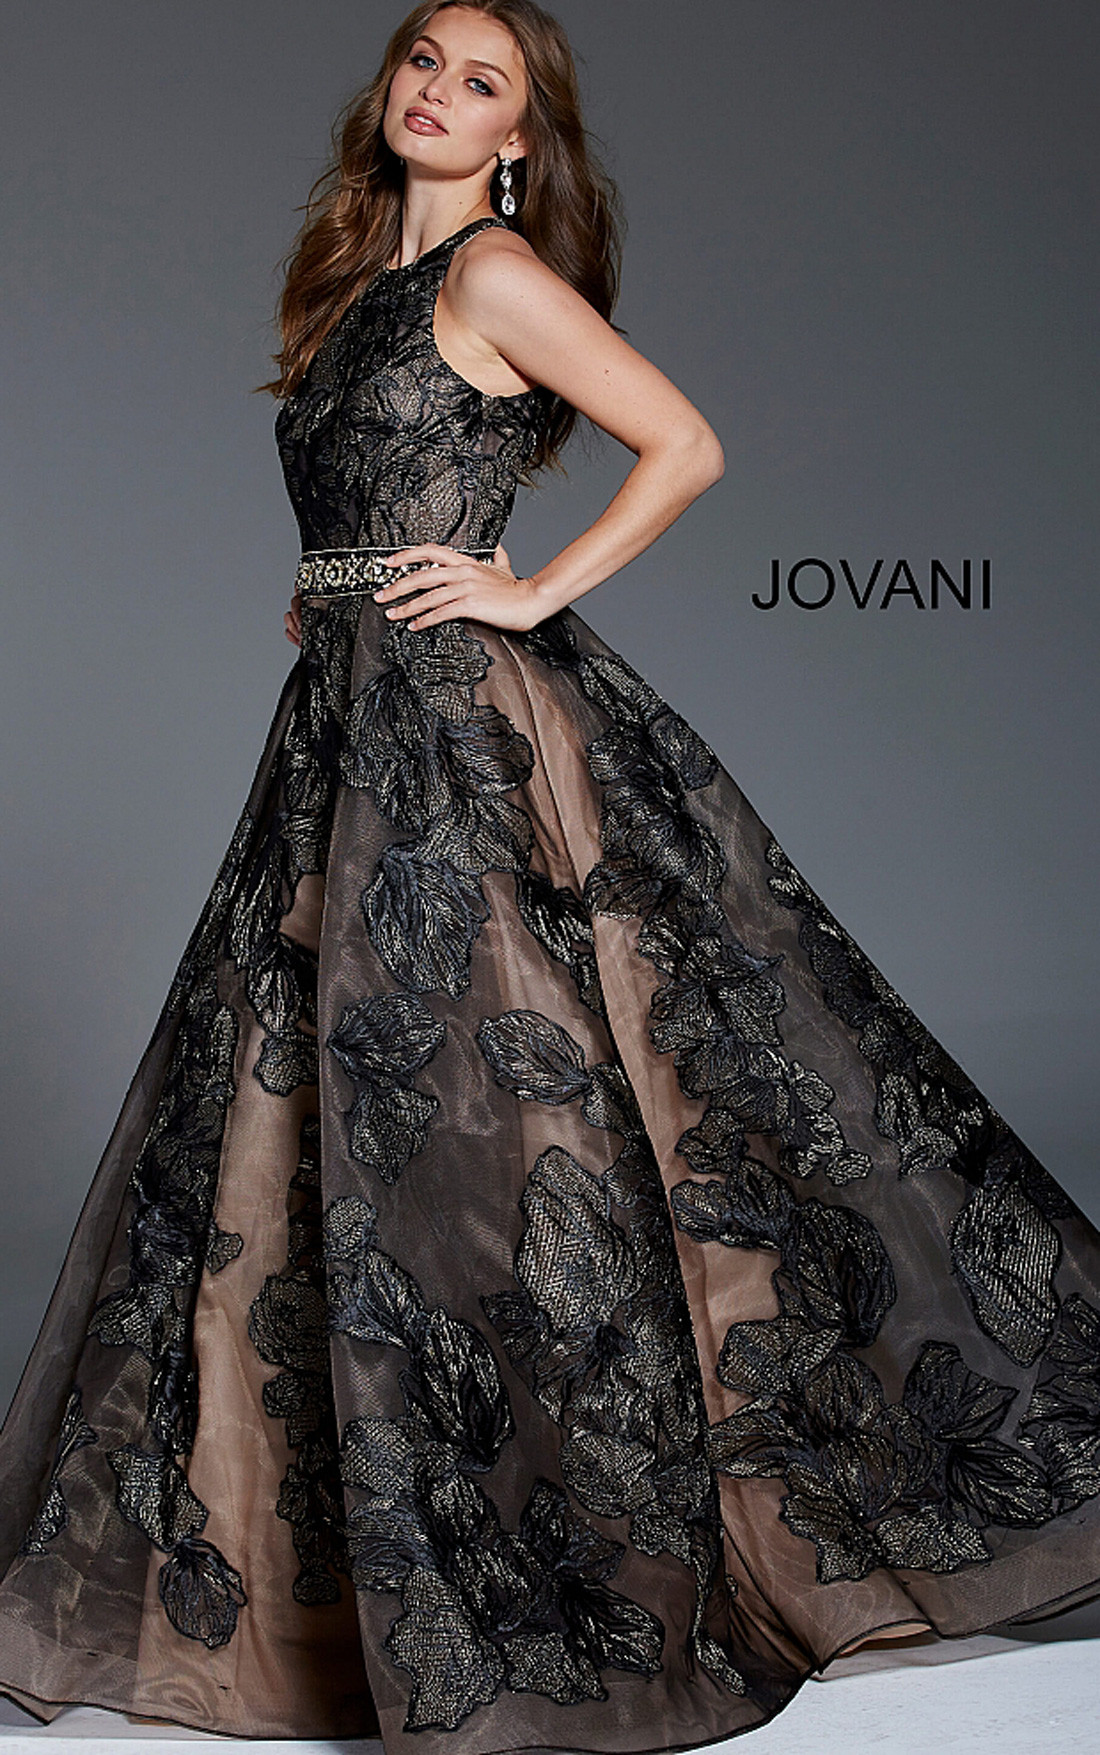 Jovani - Black Floral Sleeveless A-Line Gown (58914)